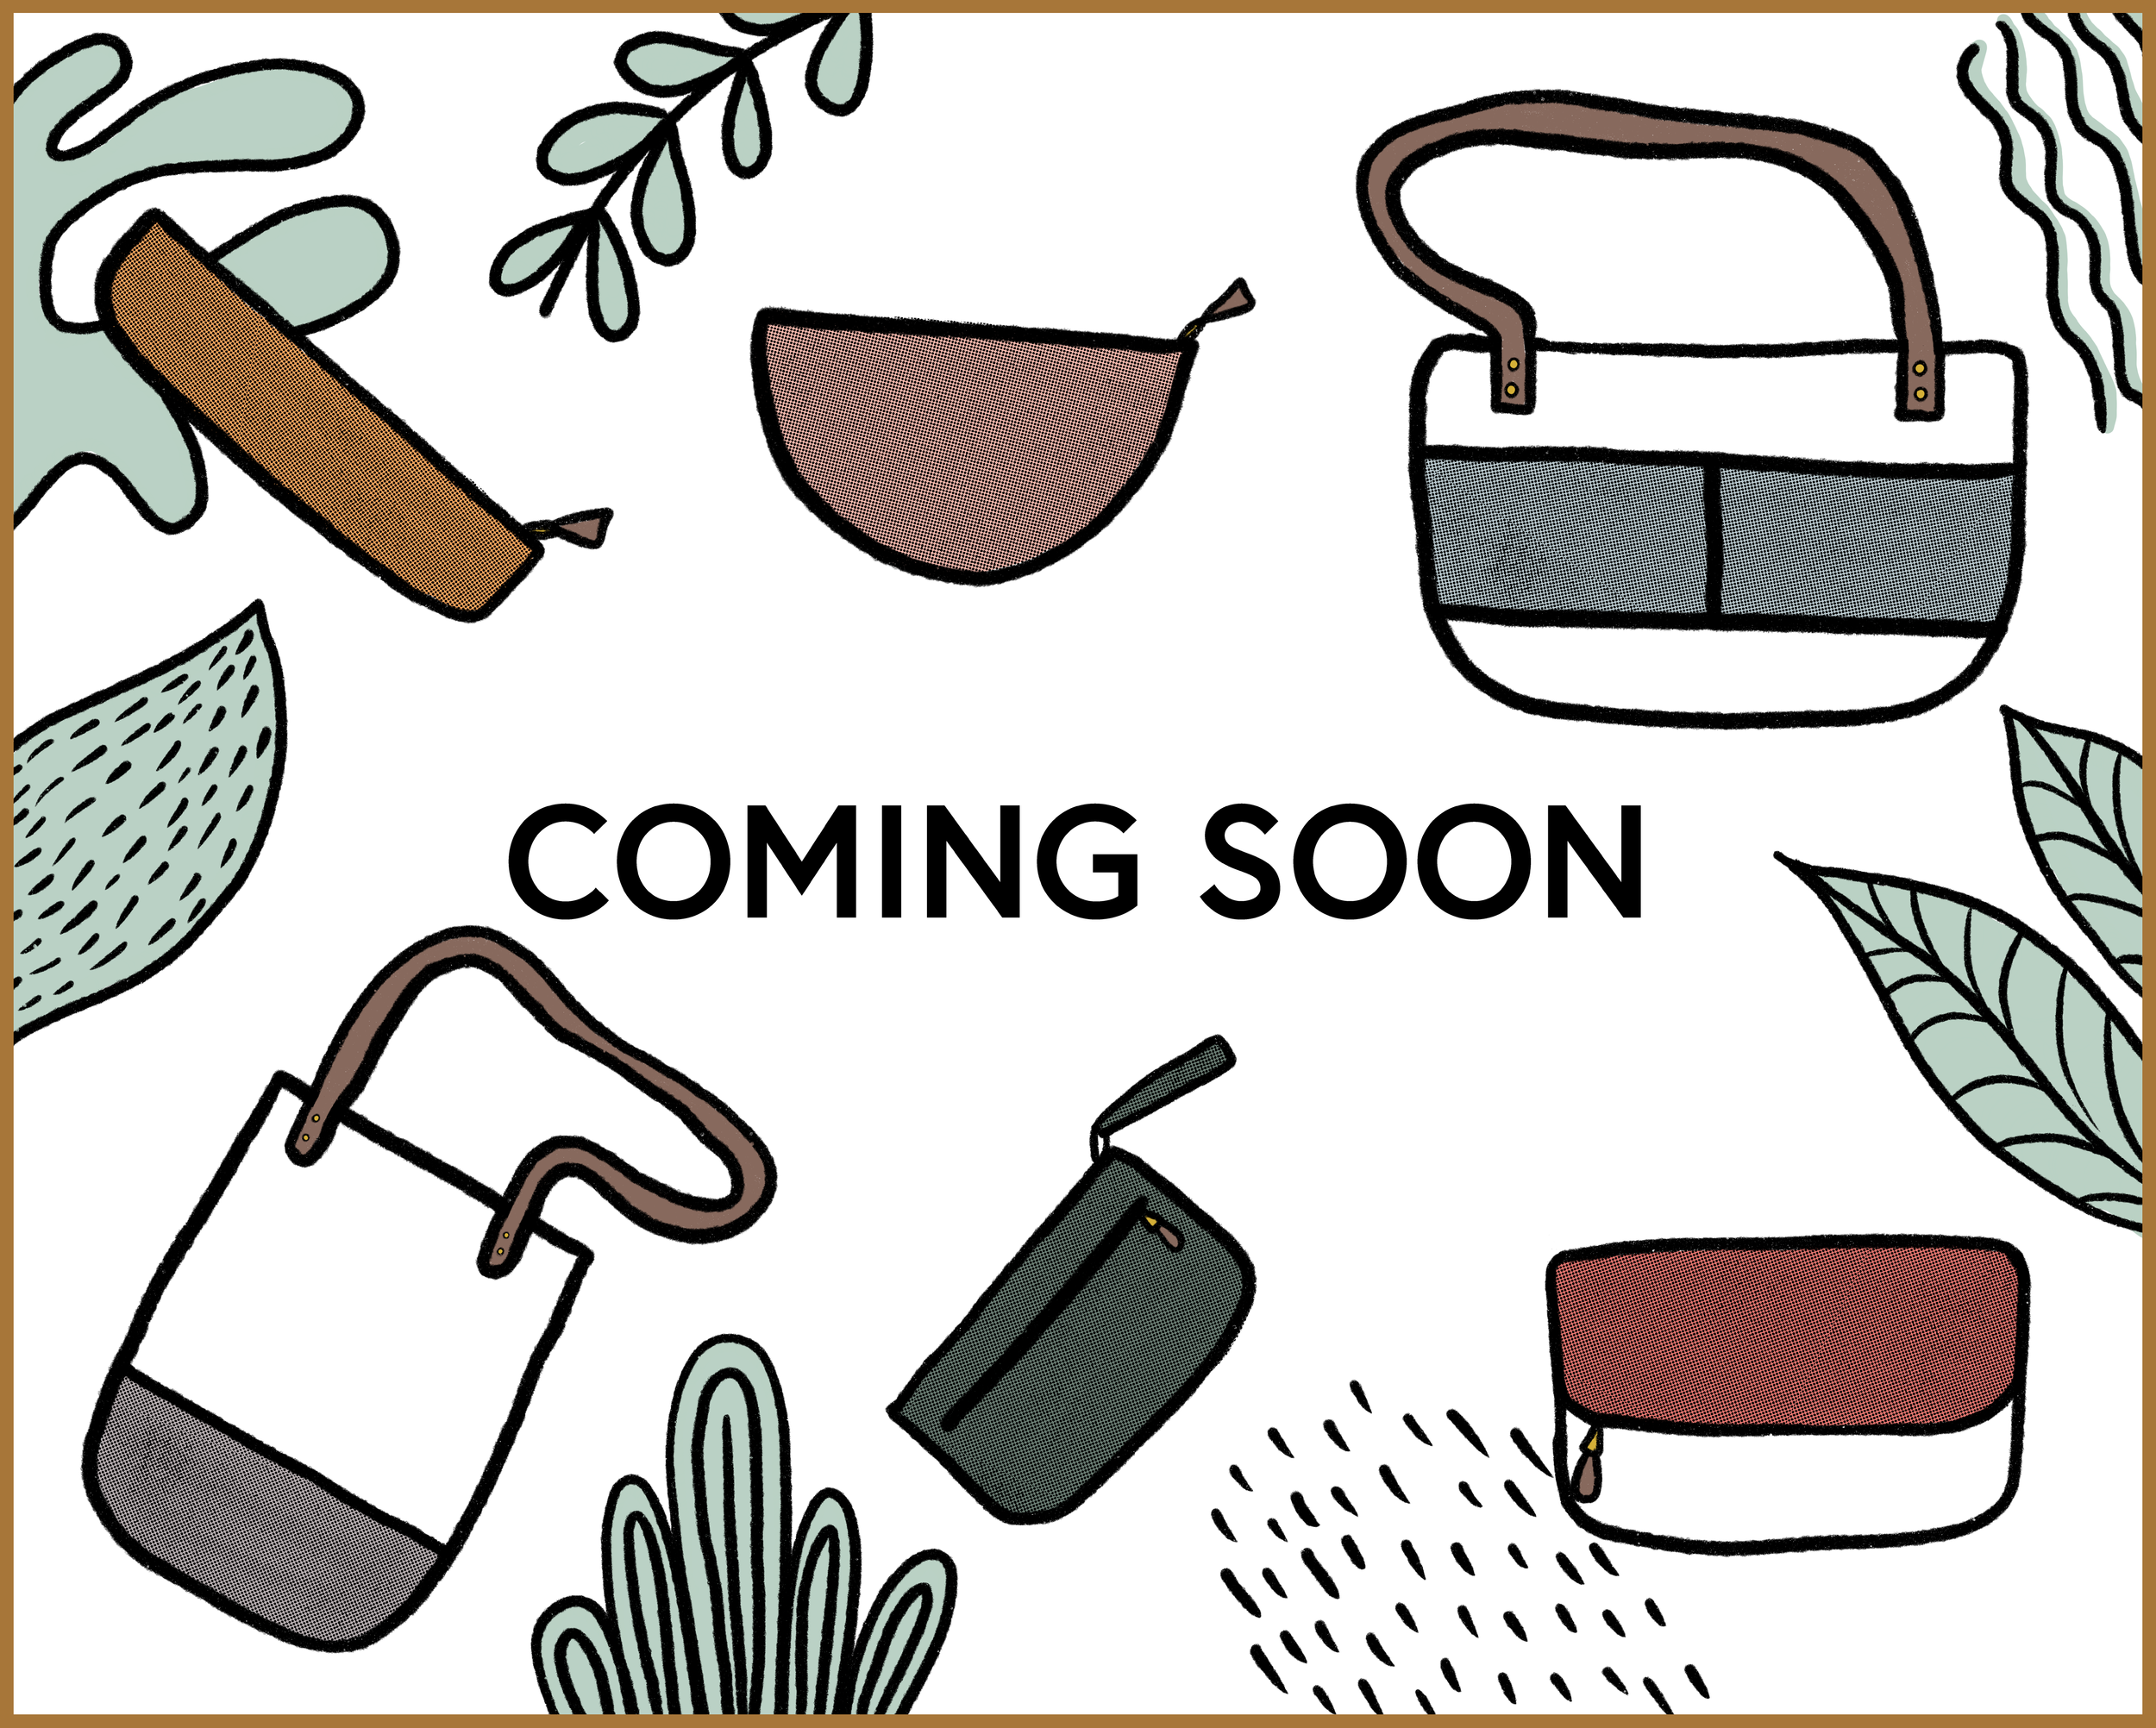 Shop_coming_soon_maria_wandiba.png